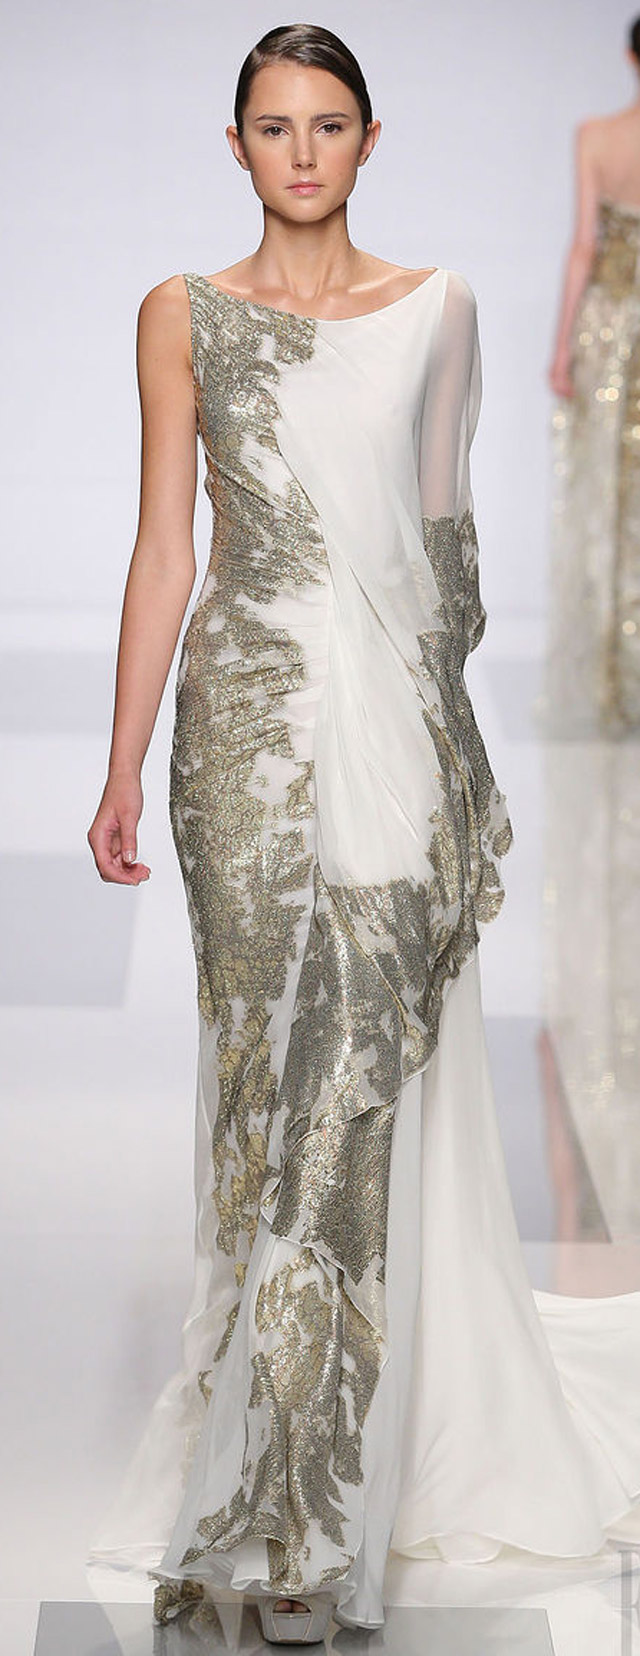 TONY WARD  COUTURE  FALL-WINTER 2013-2014 (17)